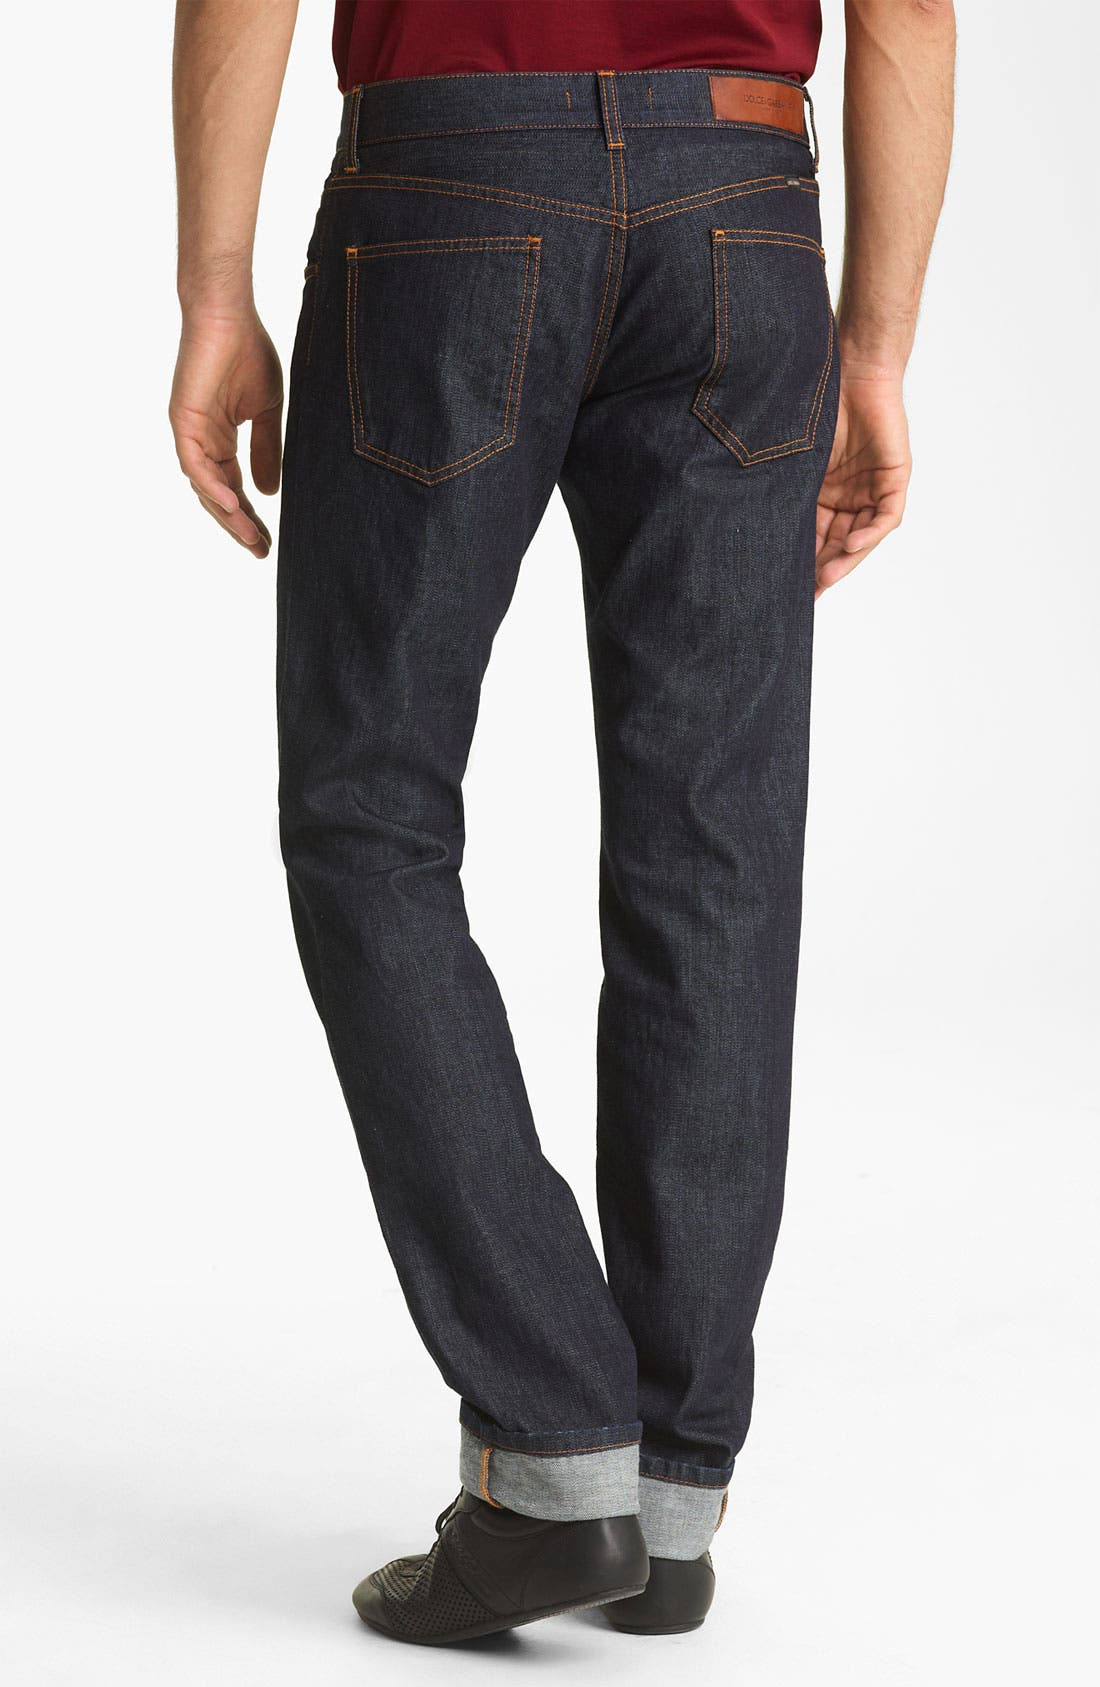 Alternate Image 1 Selected - Dolce&Gabbana Slim Straight Leg Jeans (Medium Grey Wash)